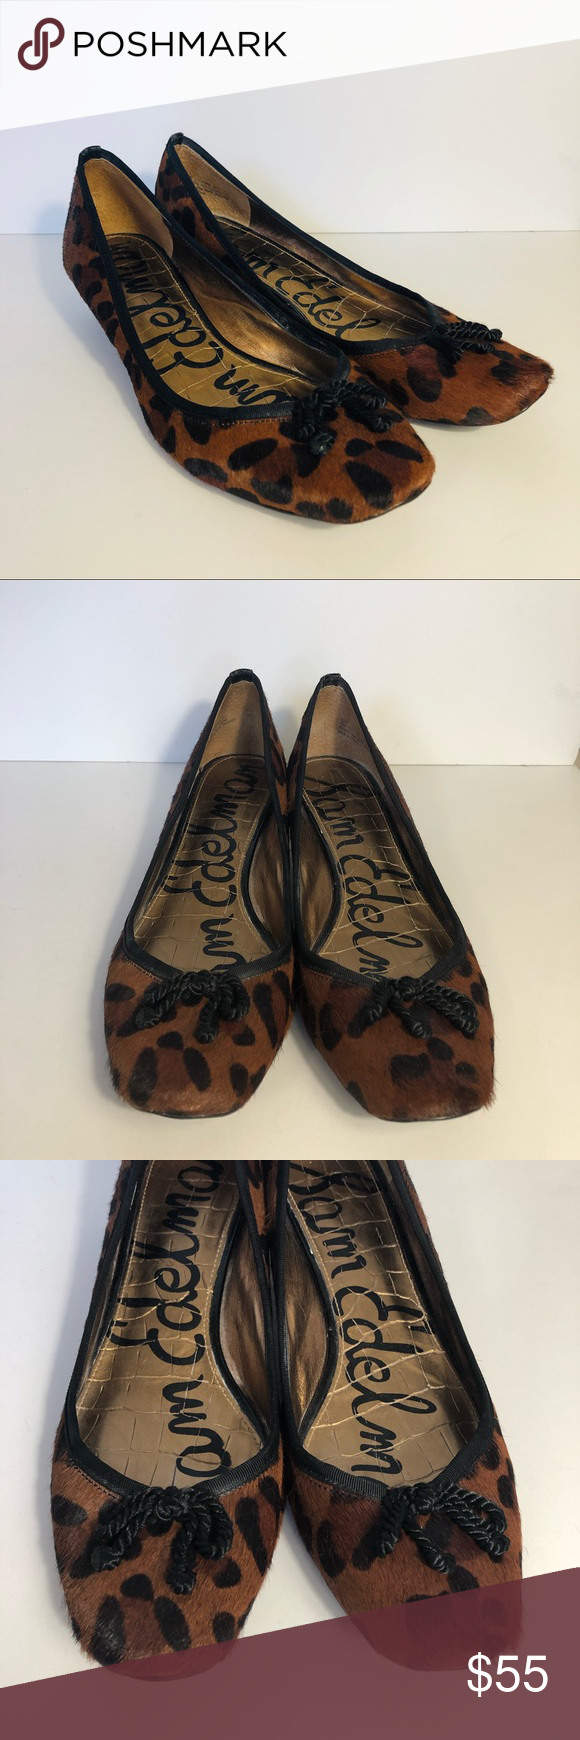 a3fcd4fcf4 Sam Edelman Hope Cow Hair Kitten Heels Great used condition. Heels have  some wear. Sam Edelman Shoes Heels